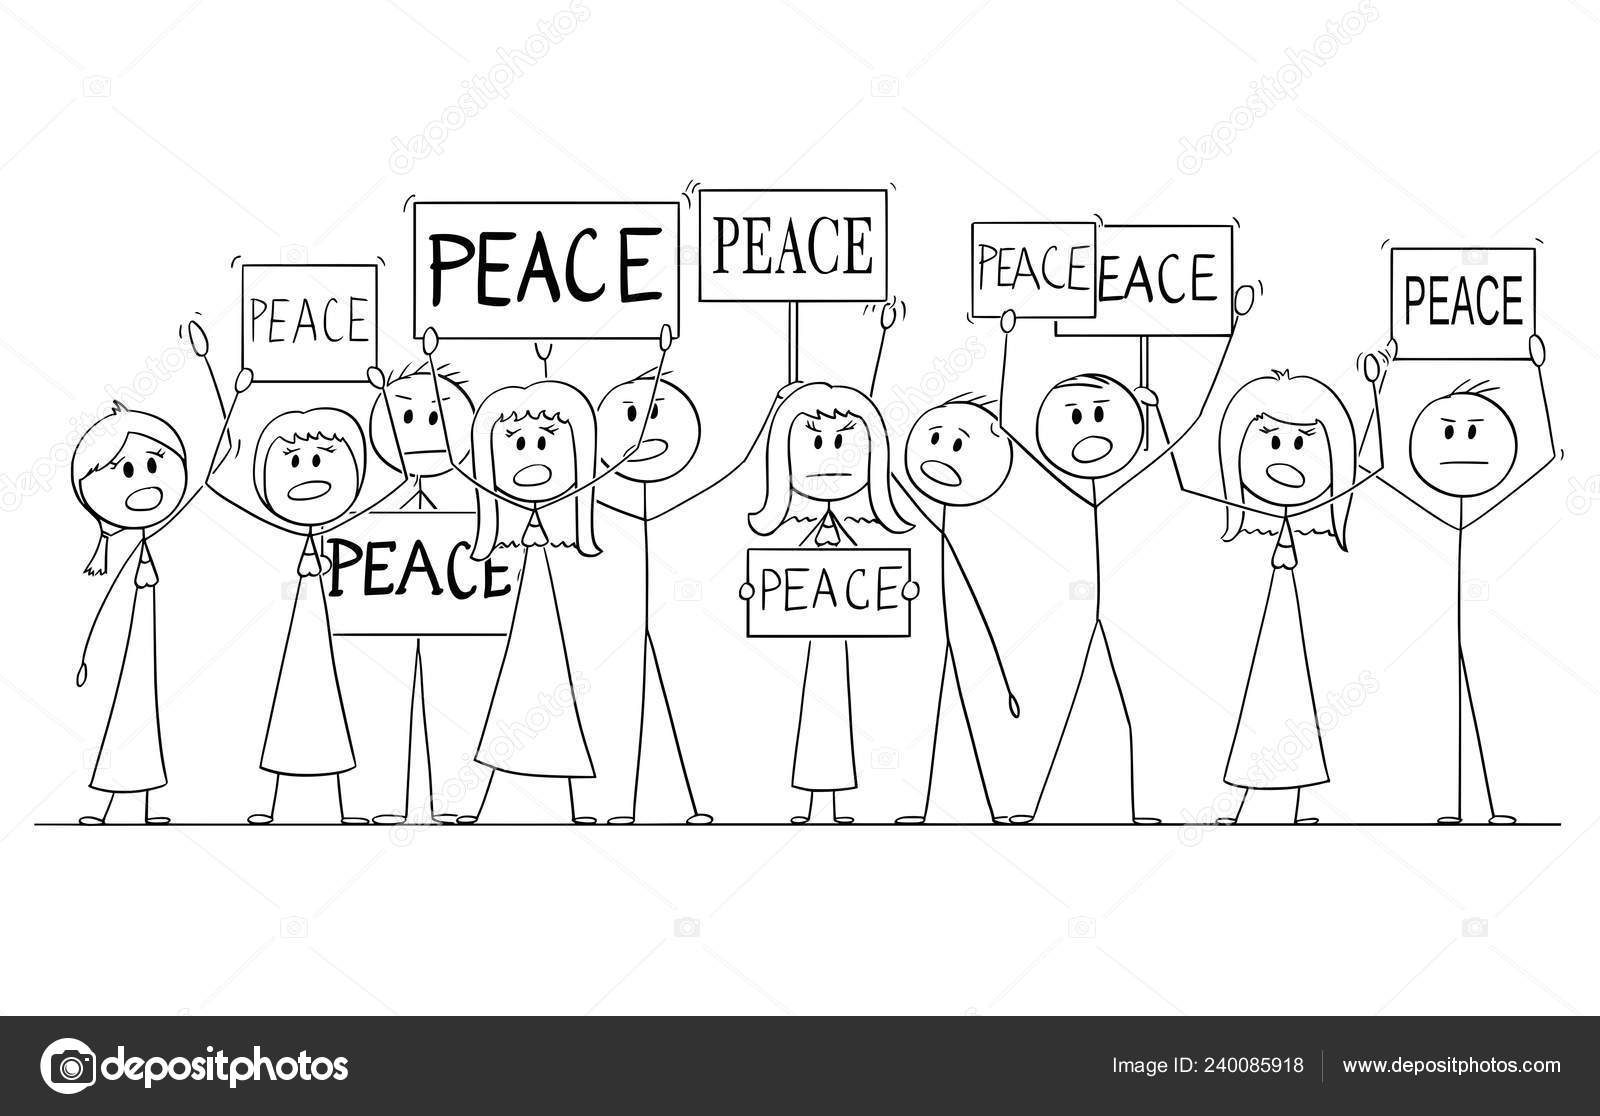 Cartoon Drawing Of Group Of People Demonstrating With Peace Text On